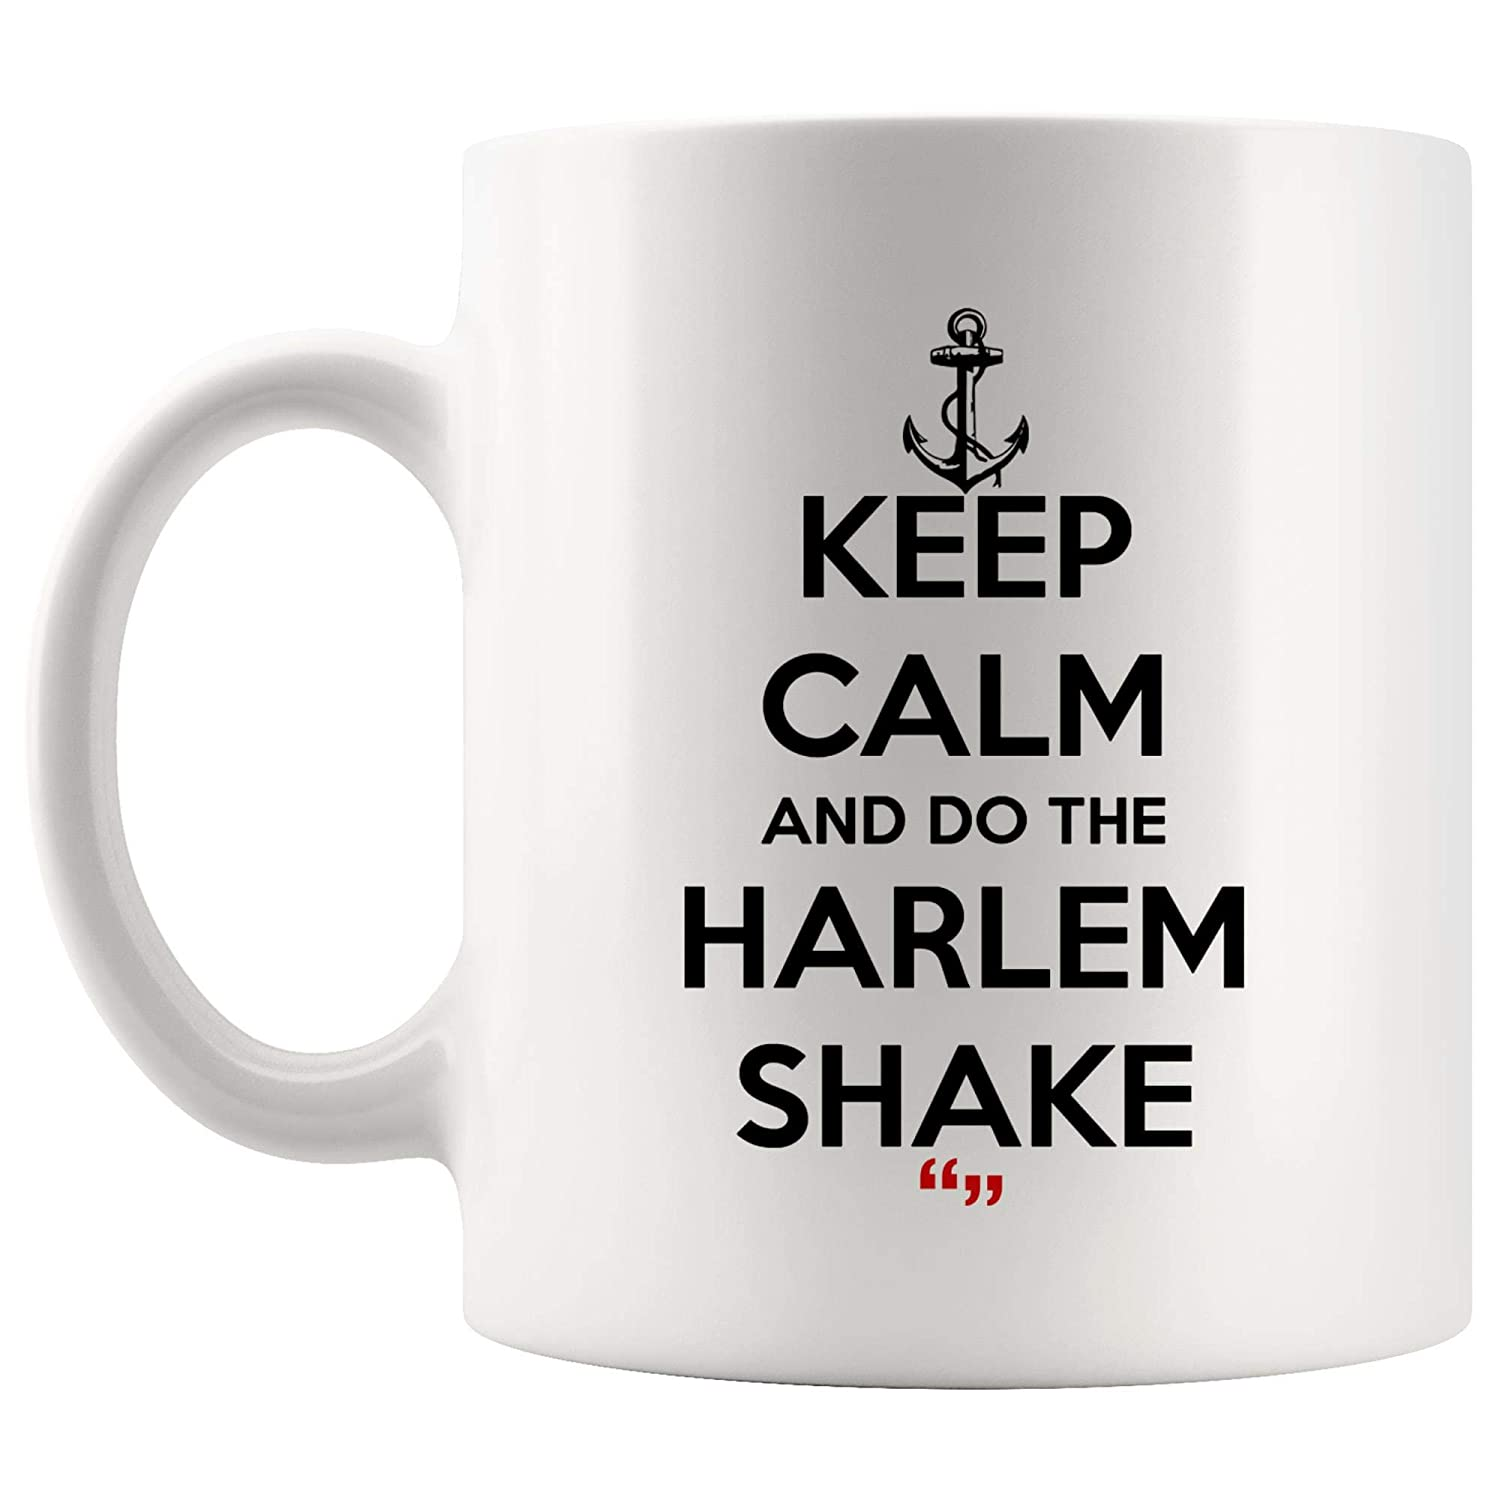 4e4e2926408 Amazon.com: Do Harlem Shake Dilute Drinks Coffee Cup Funny Mug | Coworker  Office Mugs Work Gifts Sarcasm Beer Sarcastic Quotes: Kitchen & Dining